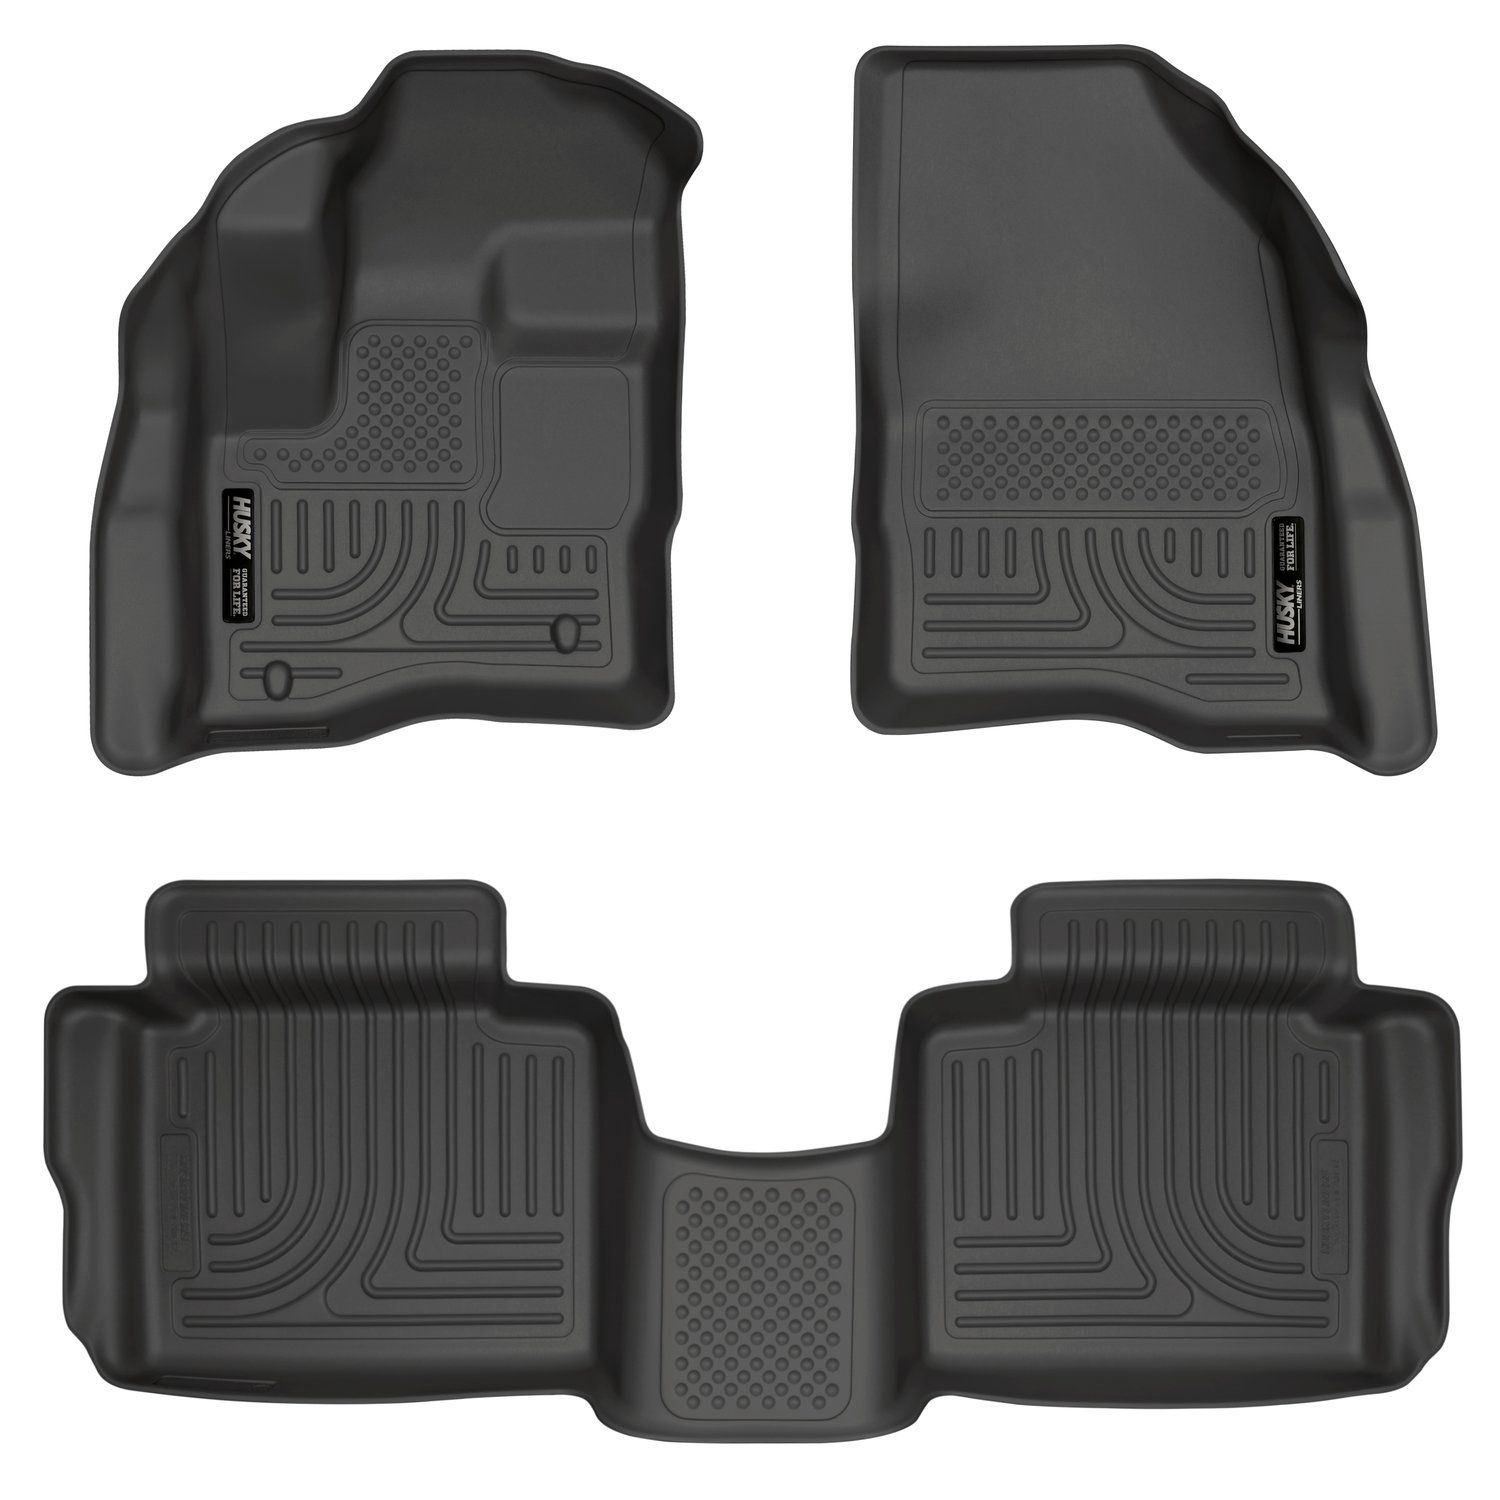 Husky Liners 98701 Black Weatherbeater Front And 2nd Seat Floor Liners Fits 2010 19 Ford Taurus Visit The Image Link Husky Liners Floor Liners Cargo Liner